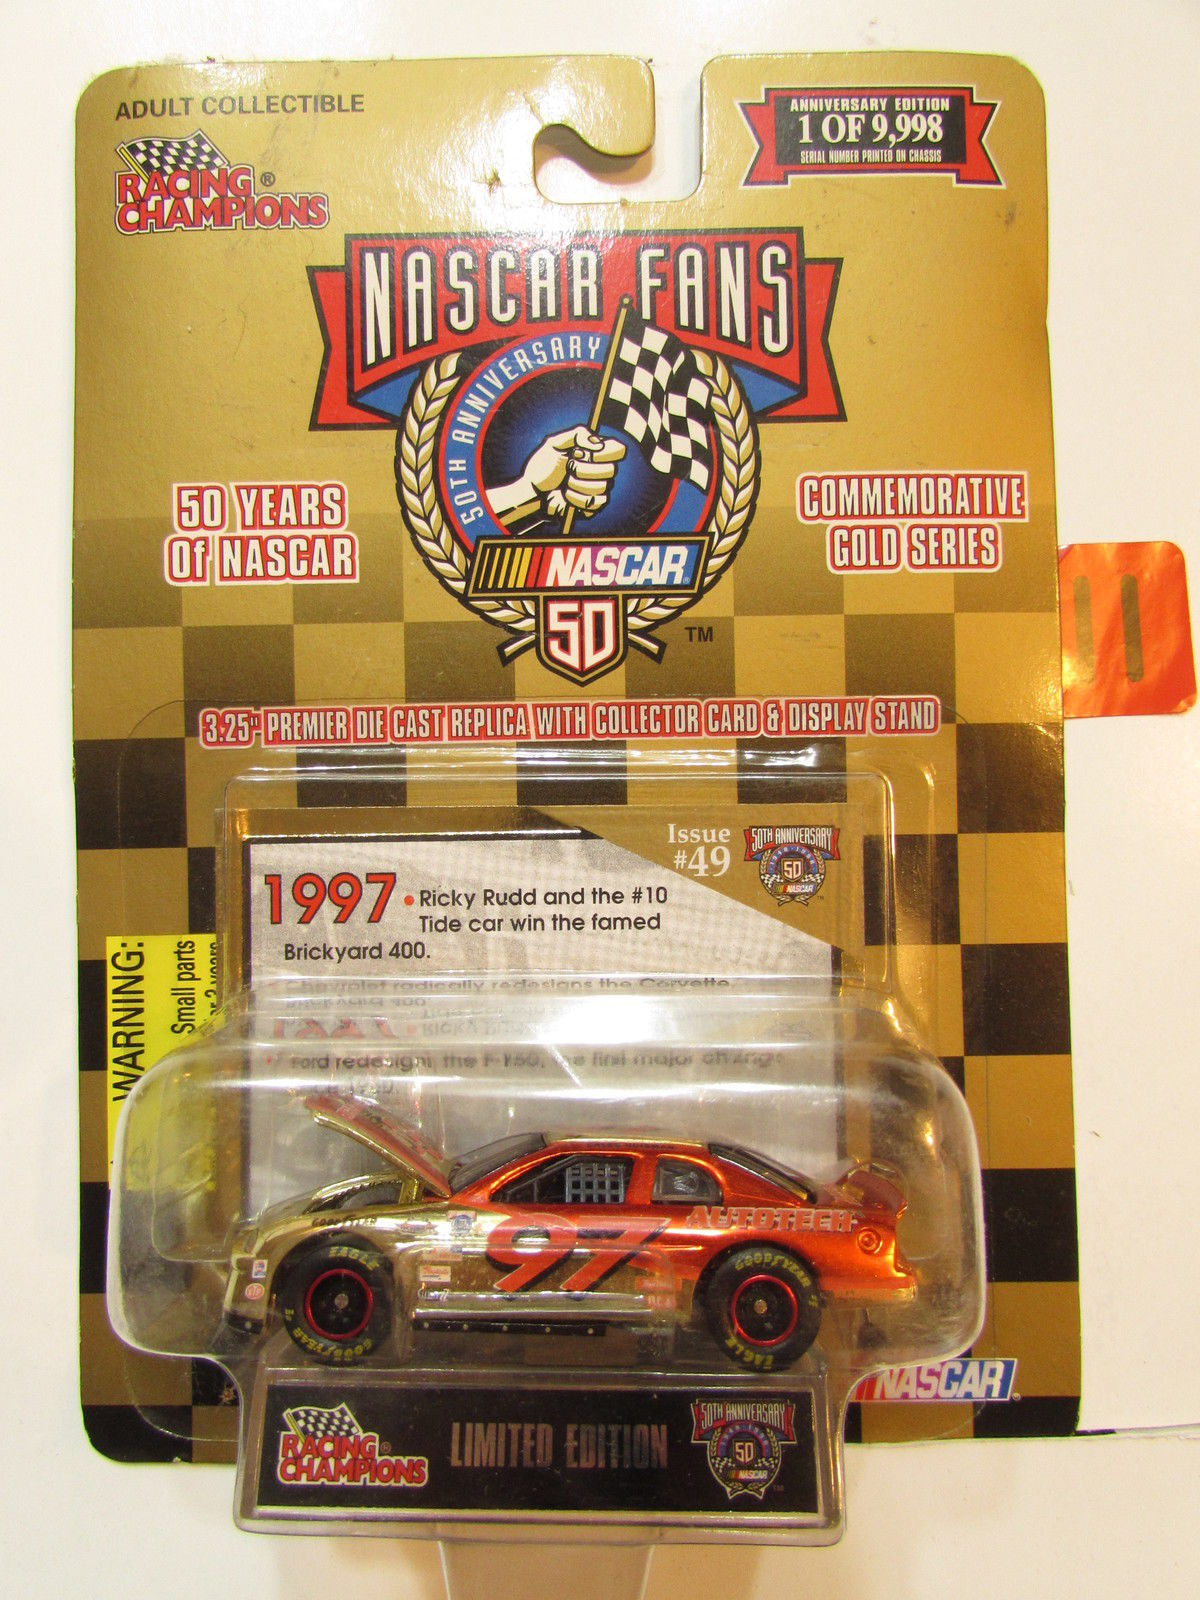 1998 RACING CHAMPIONS NASCAR FANS - ISSUE #49 1997 RICKY RUTT LIMITED EDITION